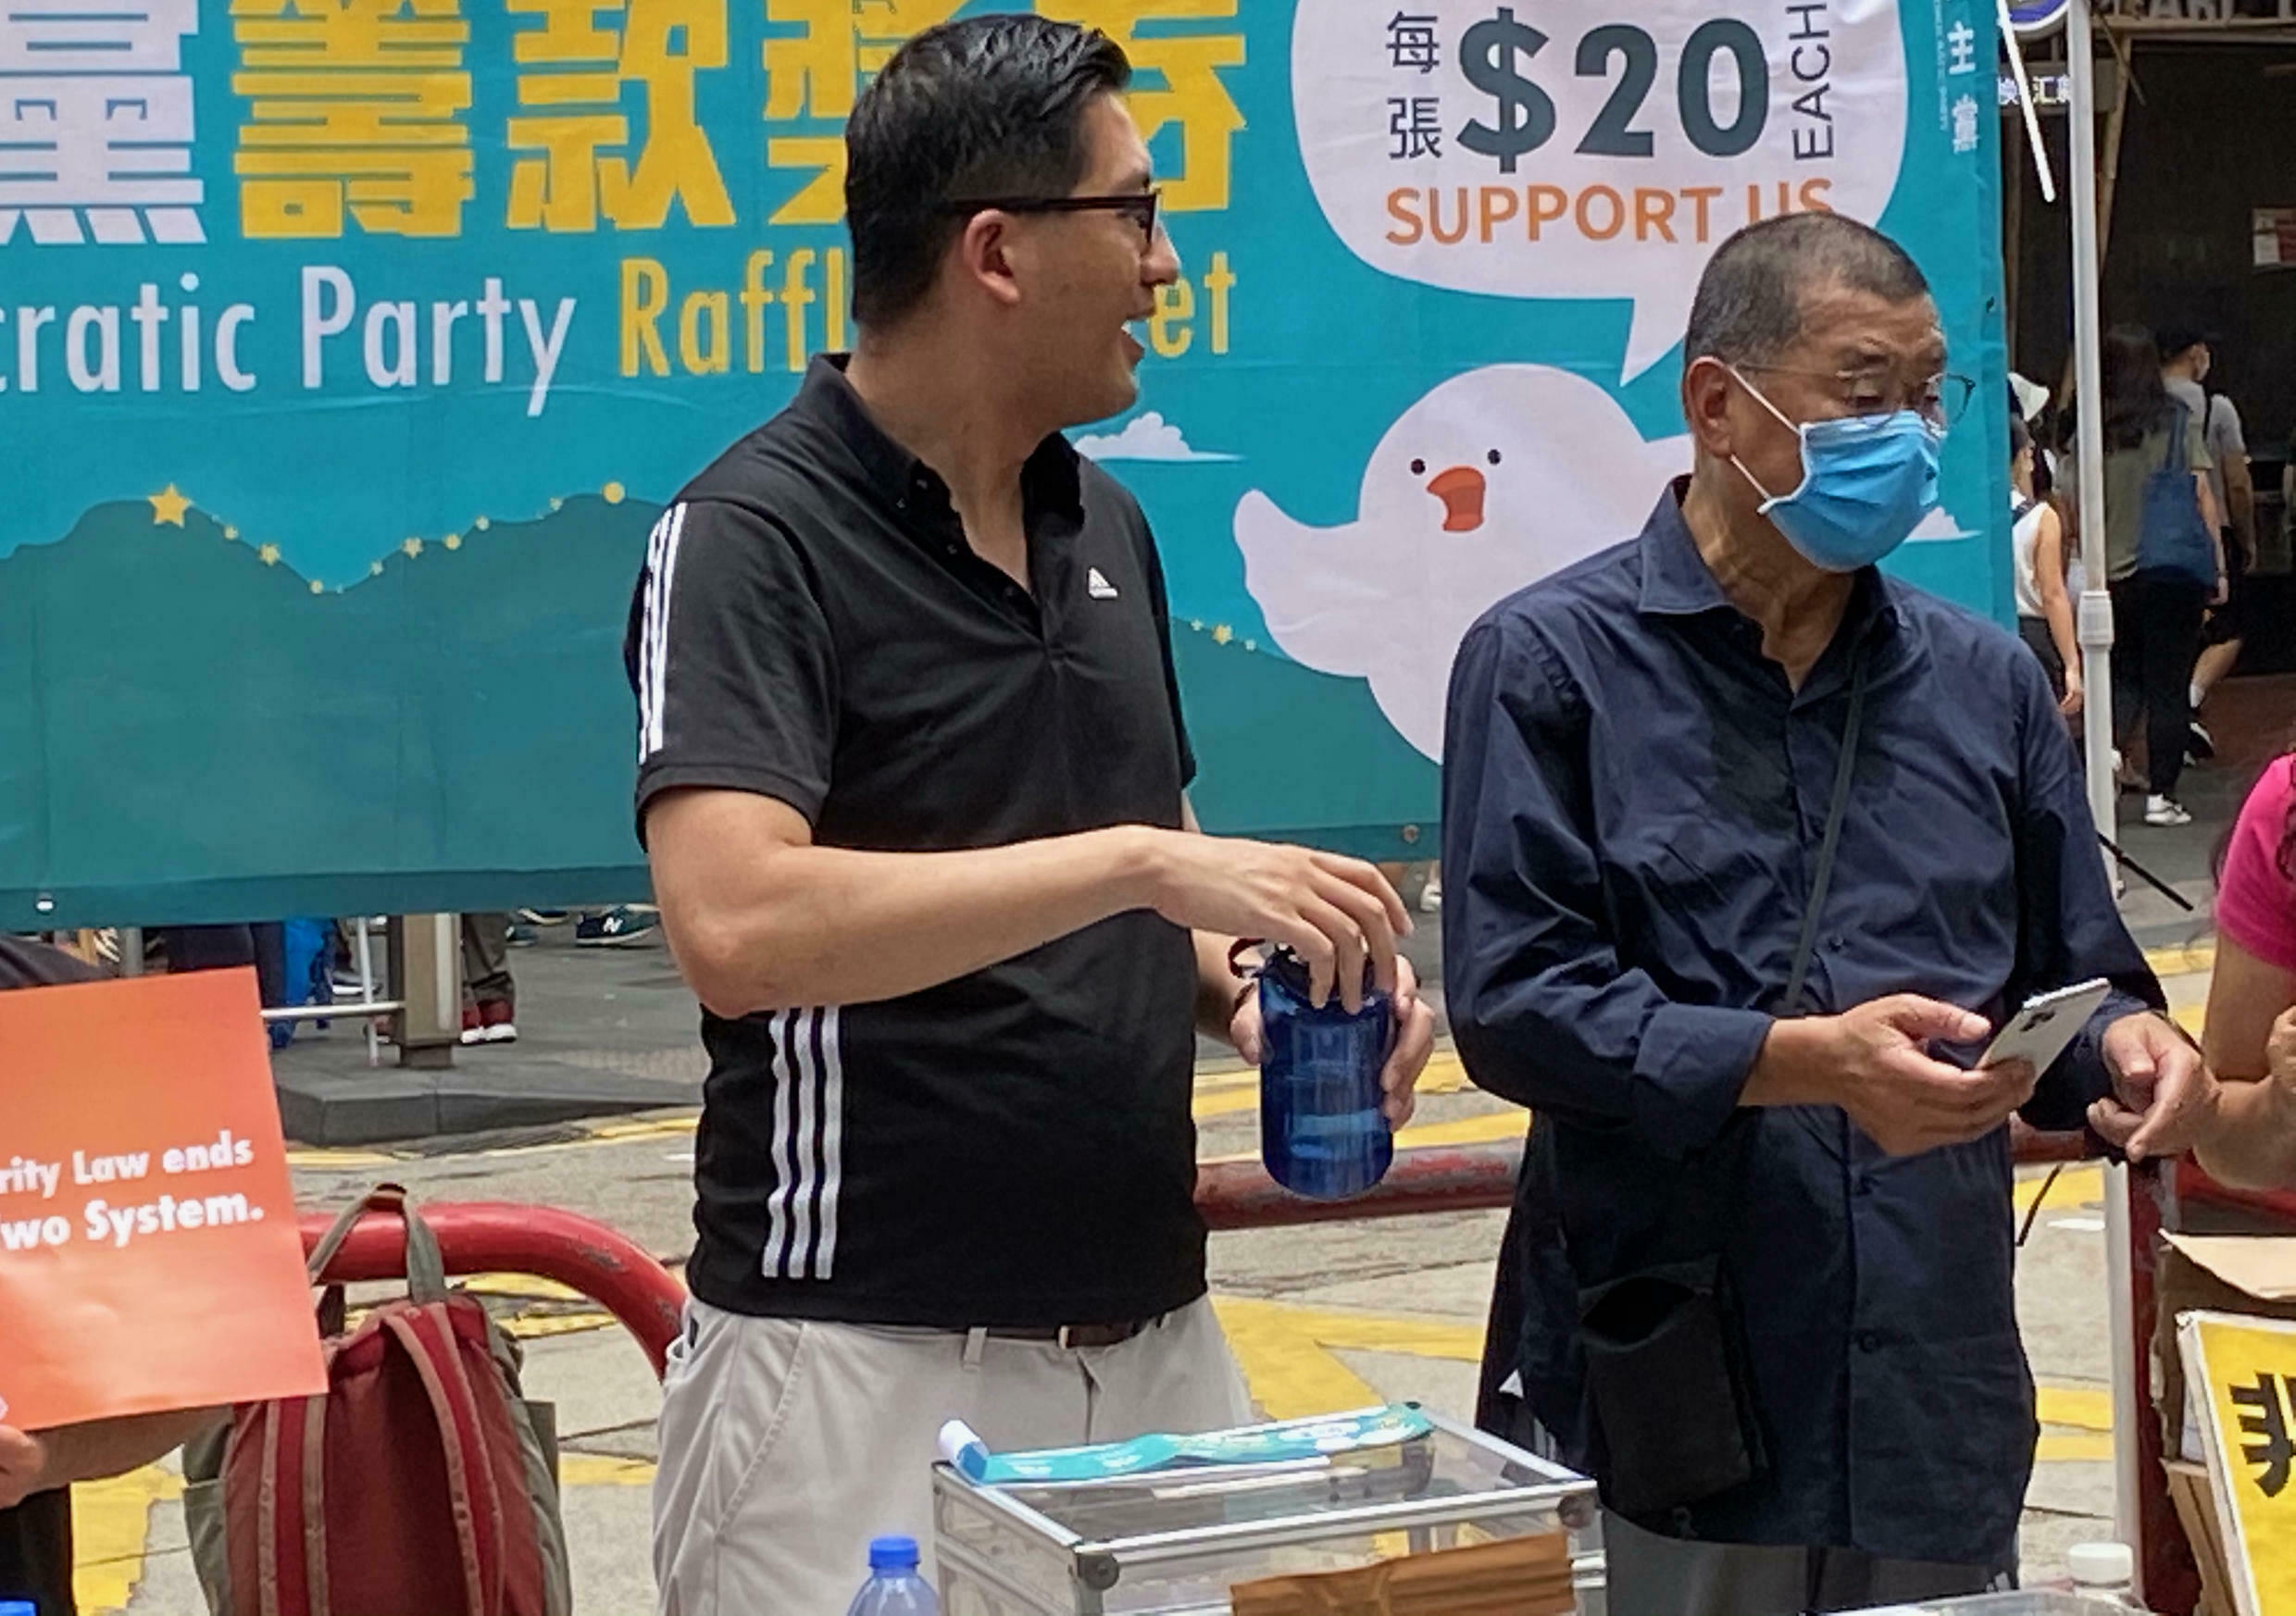 Jimmy Lai (right), pictured at a Democratic Party stand at a protest on 1July 2020, the day after Hong Kong's National Security Law came into force.